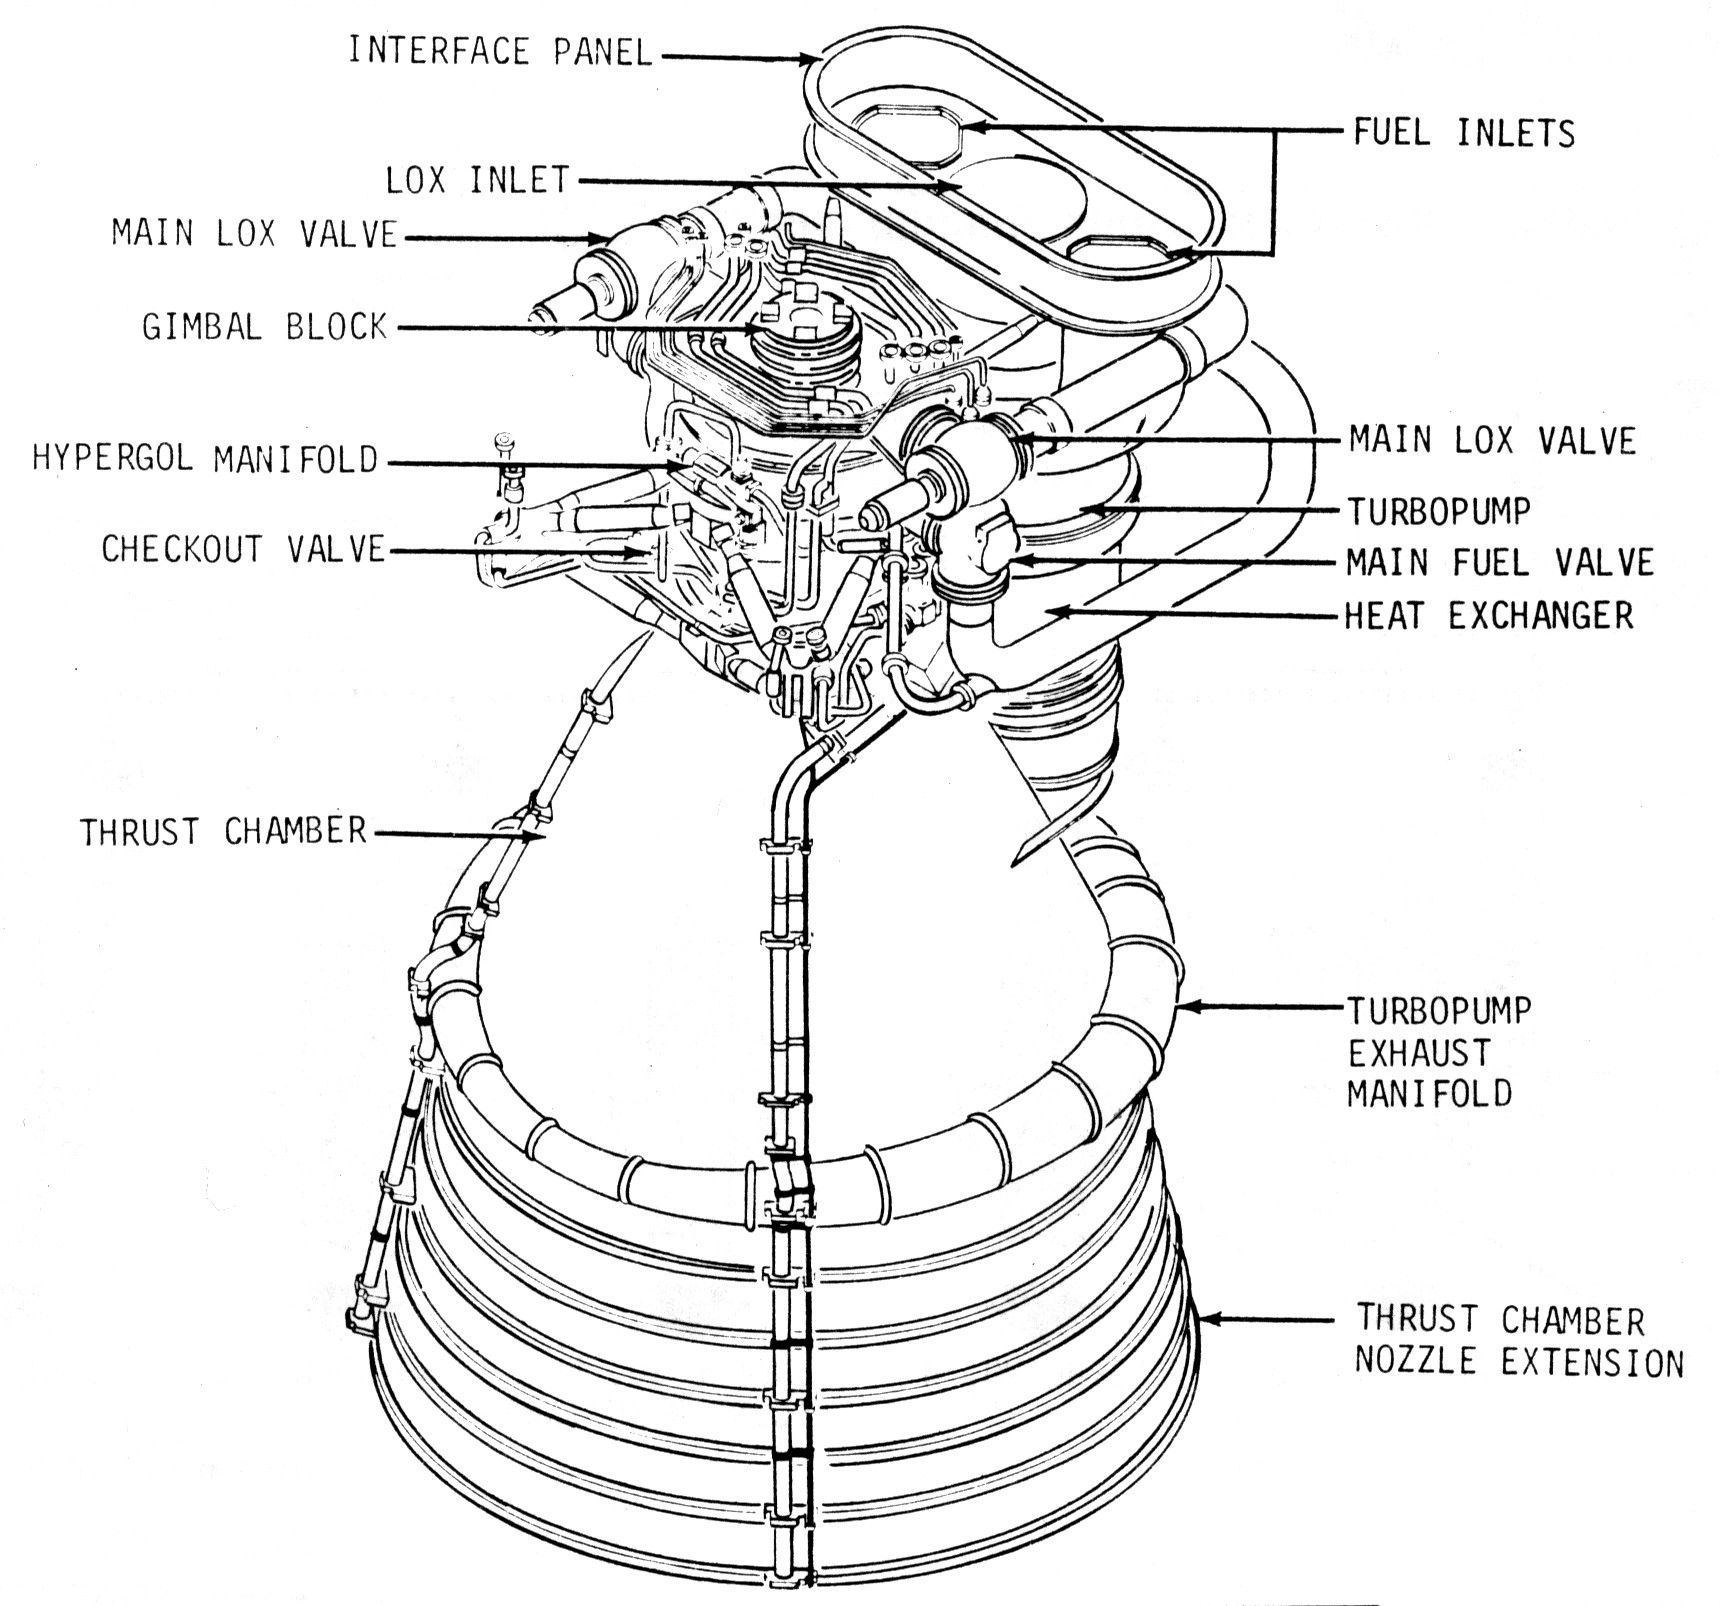 What Is The Difference Between Boeing 777 Aircraft Engines And Apollo Rocket Engines